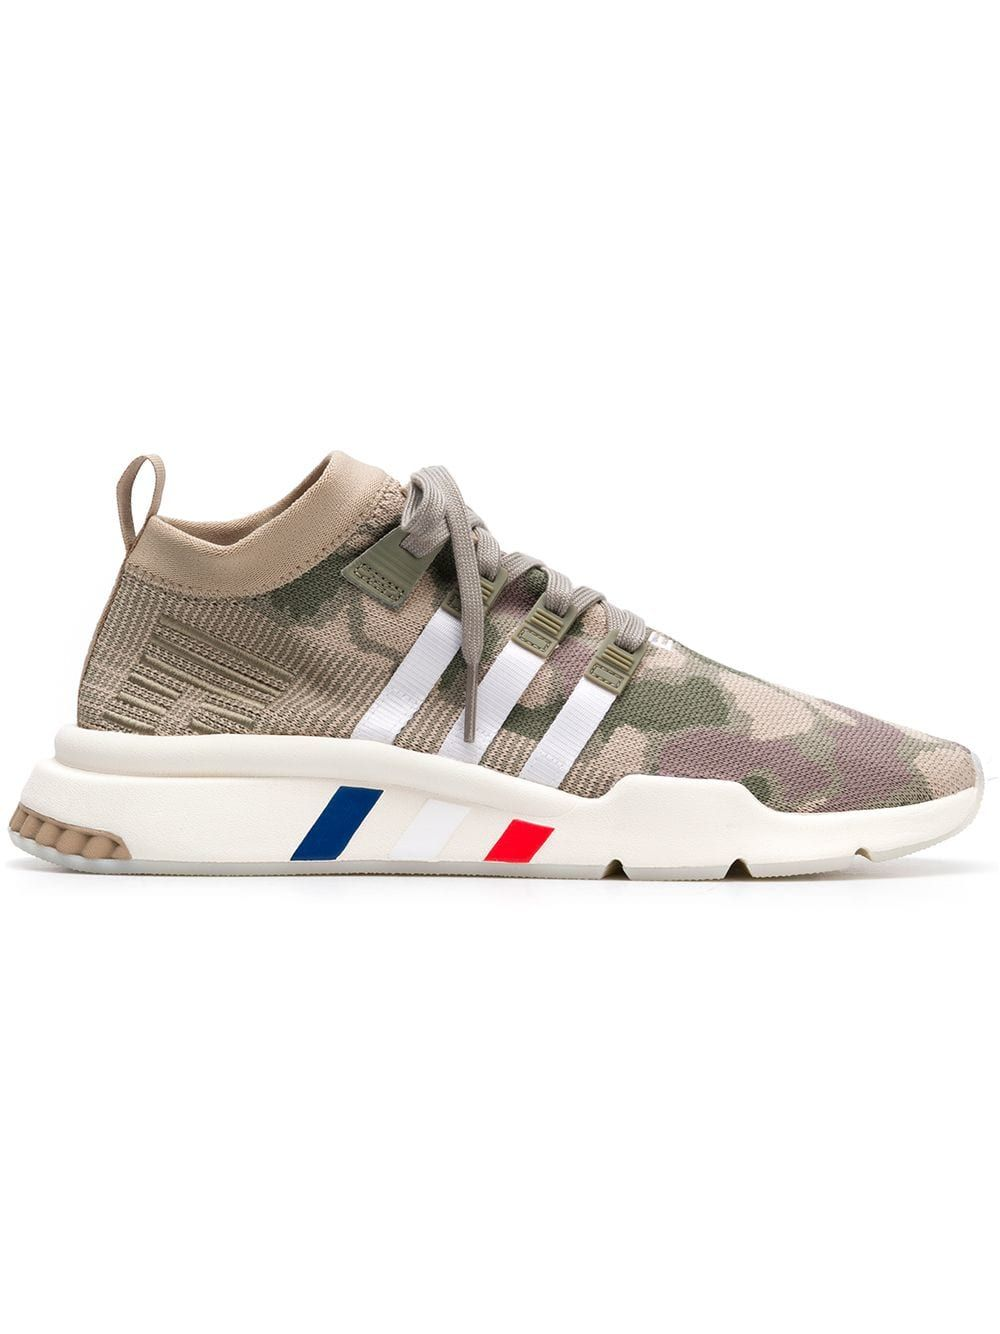 timeless design 99569 dd9e7 Adidas zapatillas EQT Support Mid Adv Primeknit Adidas Originals Mens, Adidas  Shoes, Sportswear,